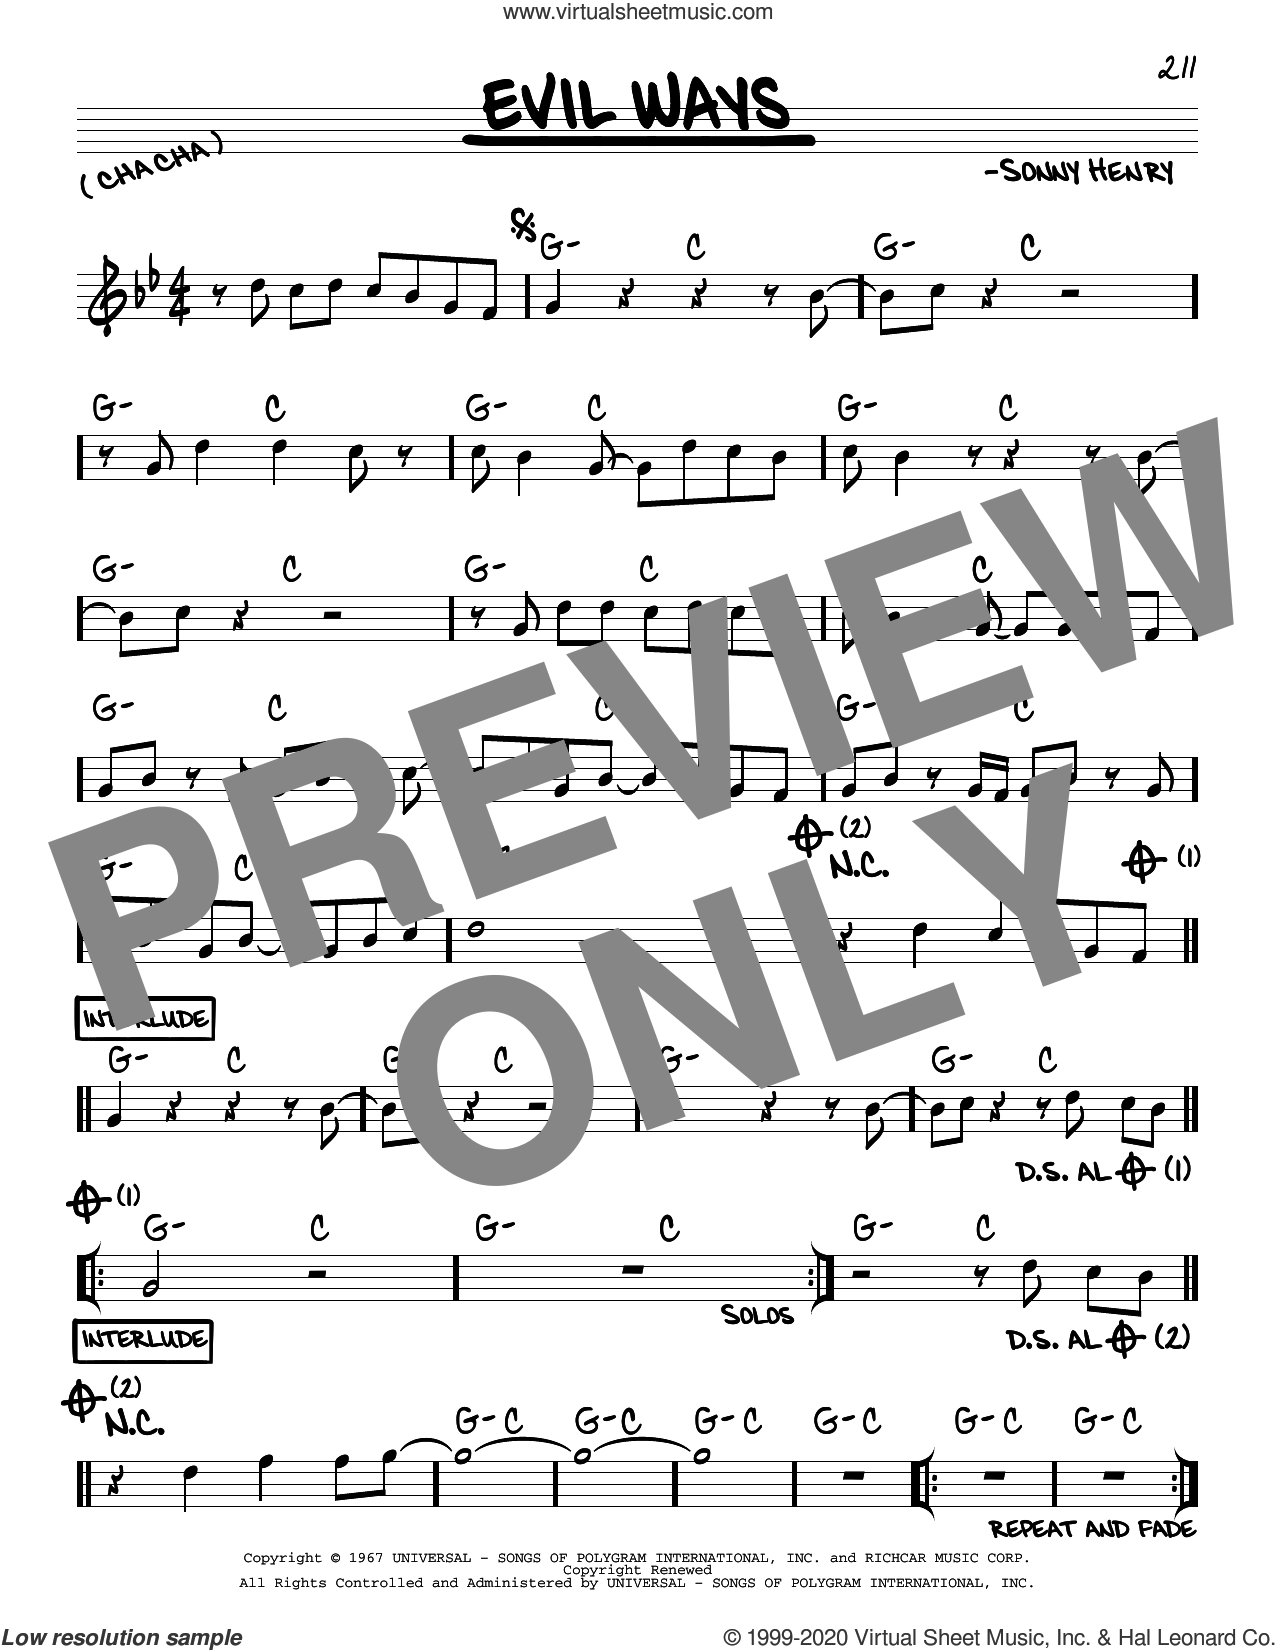 Evil Ways sheet music for voice and other instruments (real book) by Carlos Santana and Sonny Henry, intermediate skill level